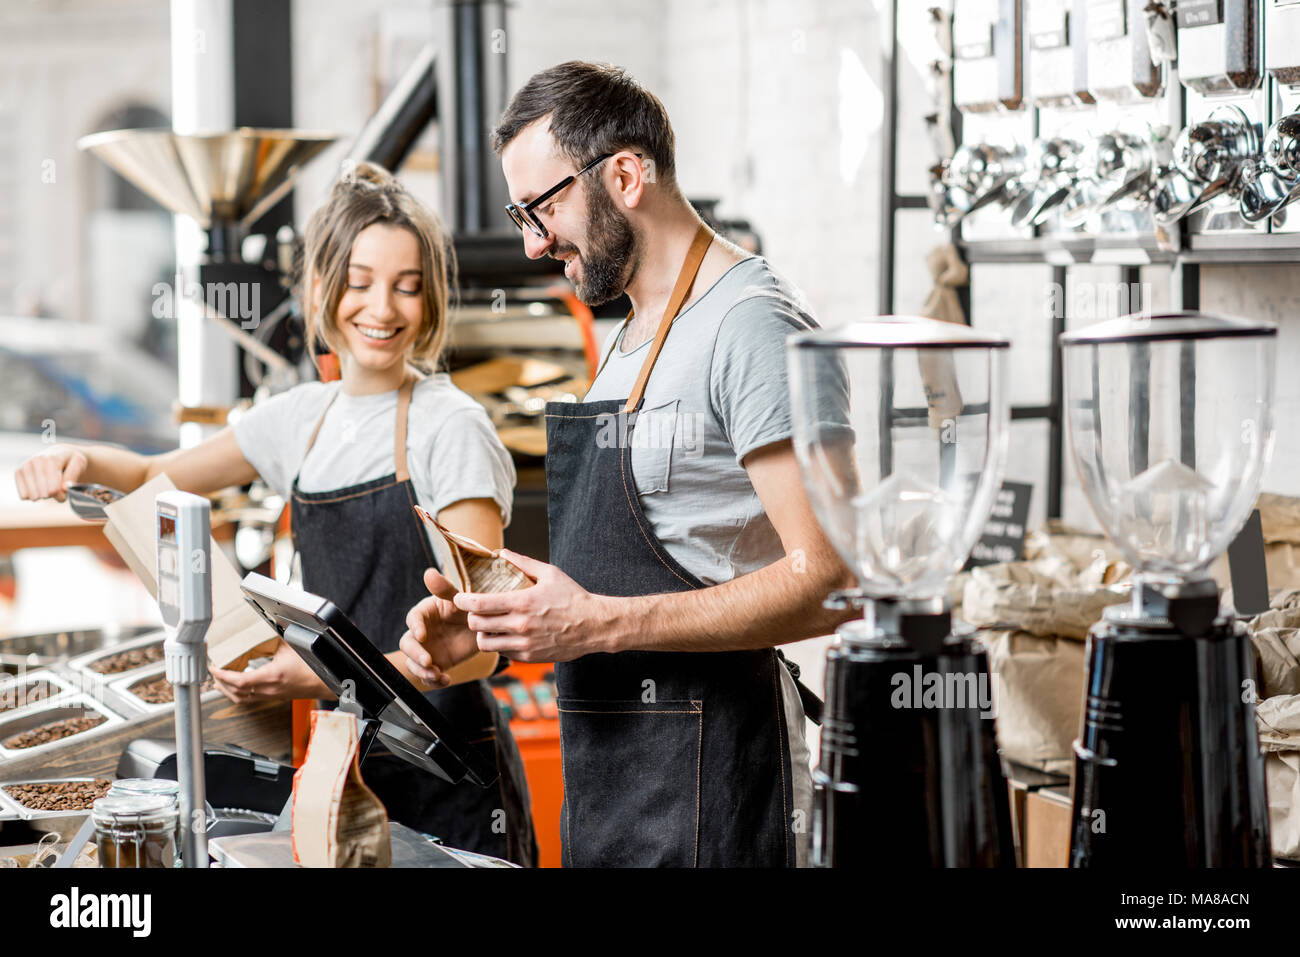 Two sellers in uniform filling bags with coffee beans working in the coffee store - Stock Image